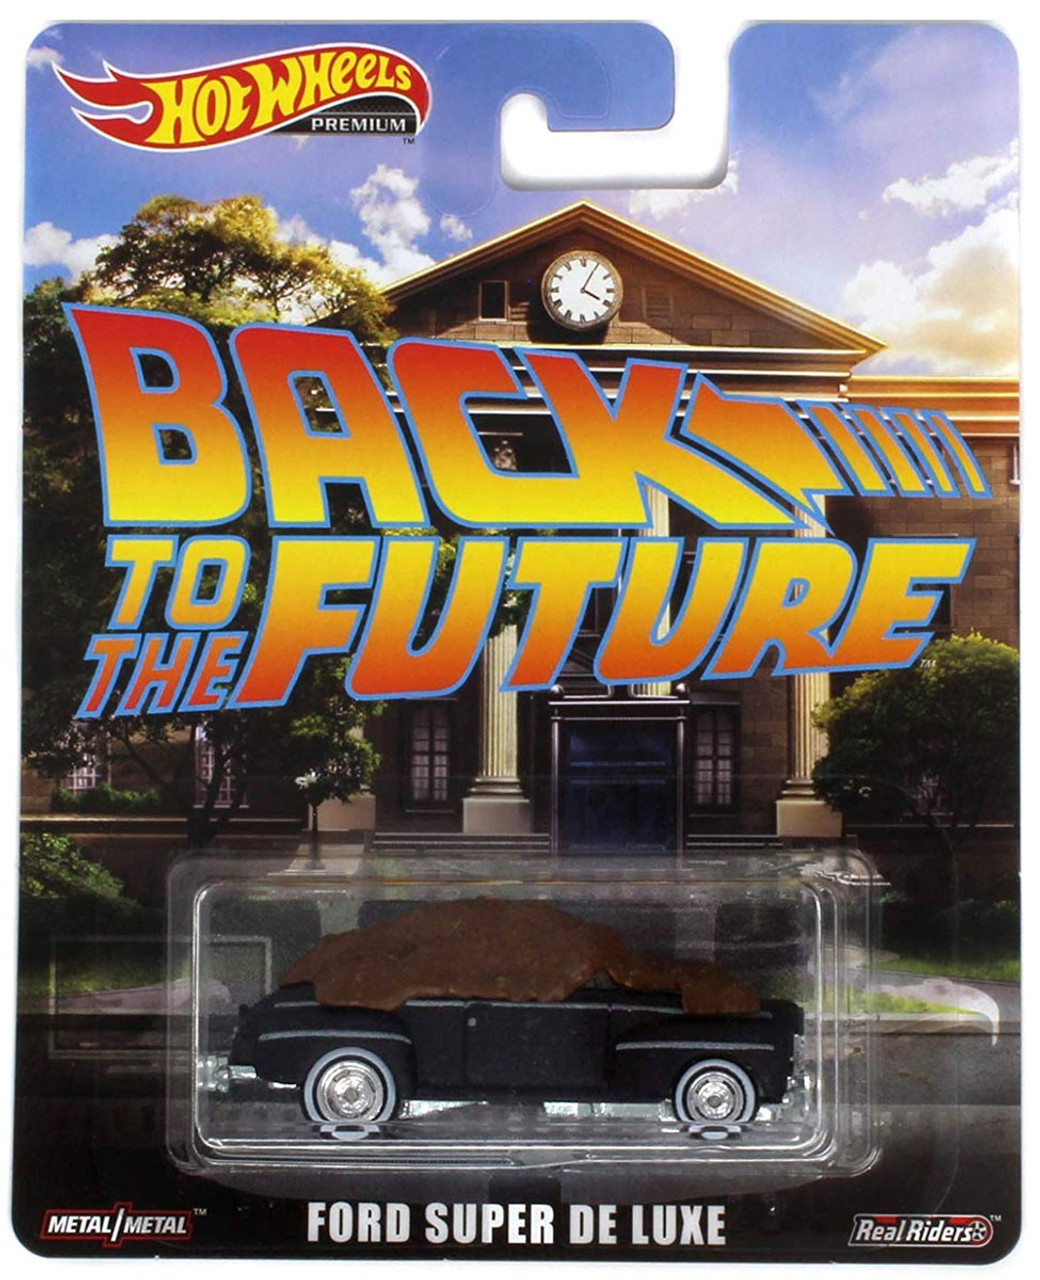 Back to the Future Hot Wheels Real Riders Ford Super De Luxe 164 Die